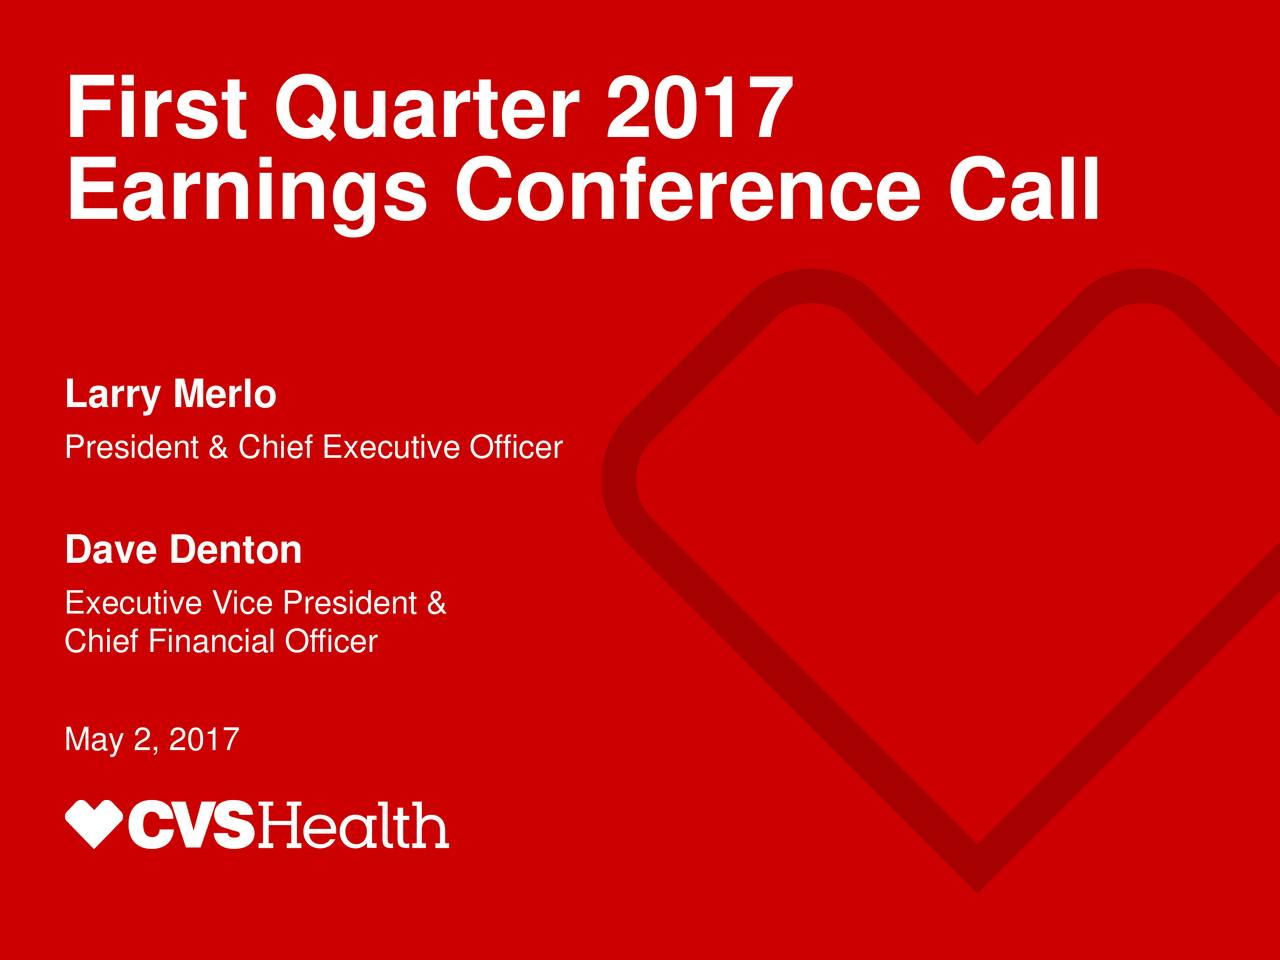 Earnings Conference Call Larry Merlo President & Chief Executive Officer Dave Denton Executive Vice President & Chief Financial Officer May 2, 2017